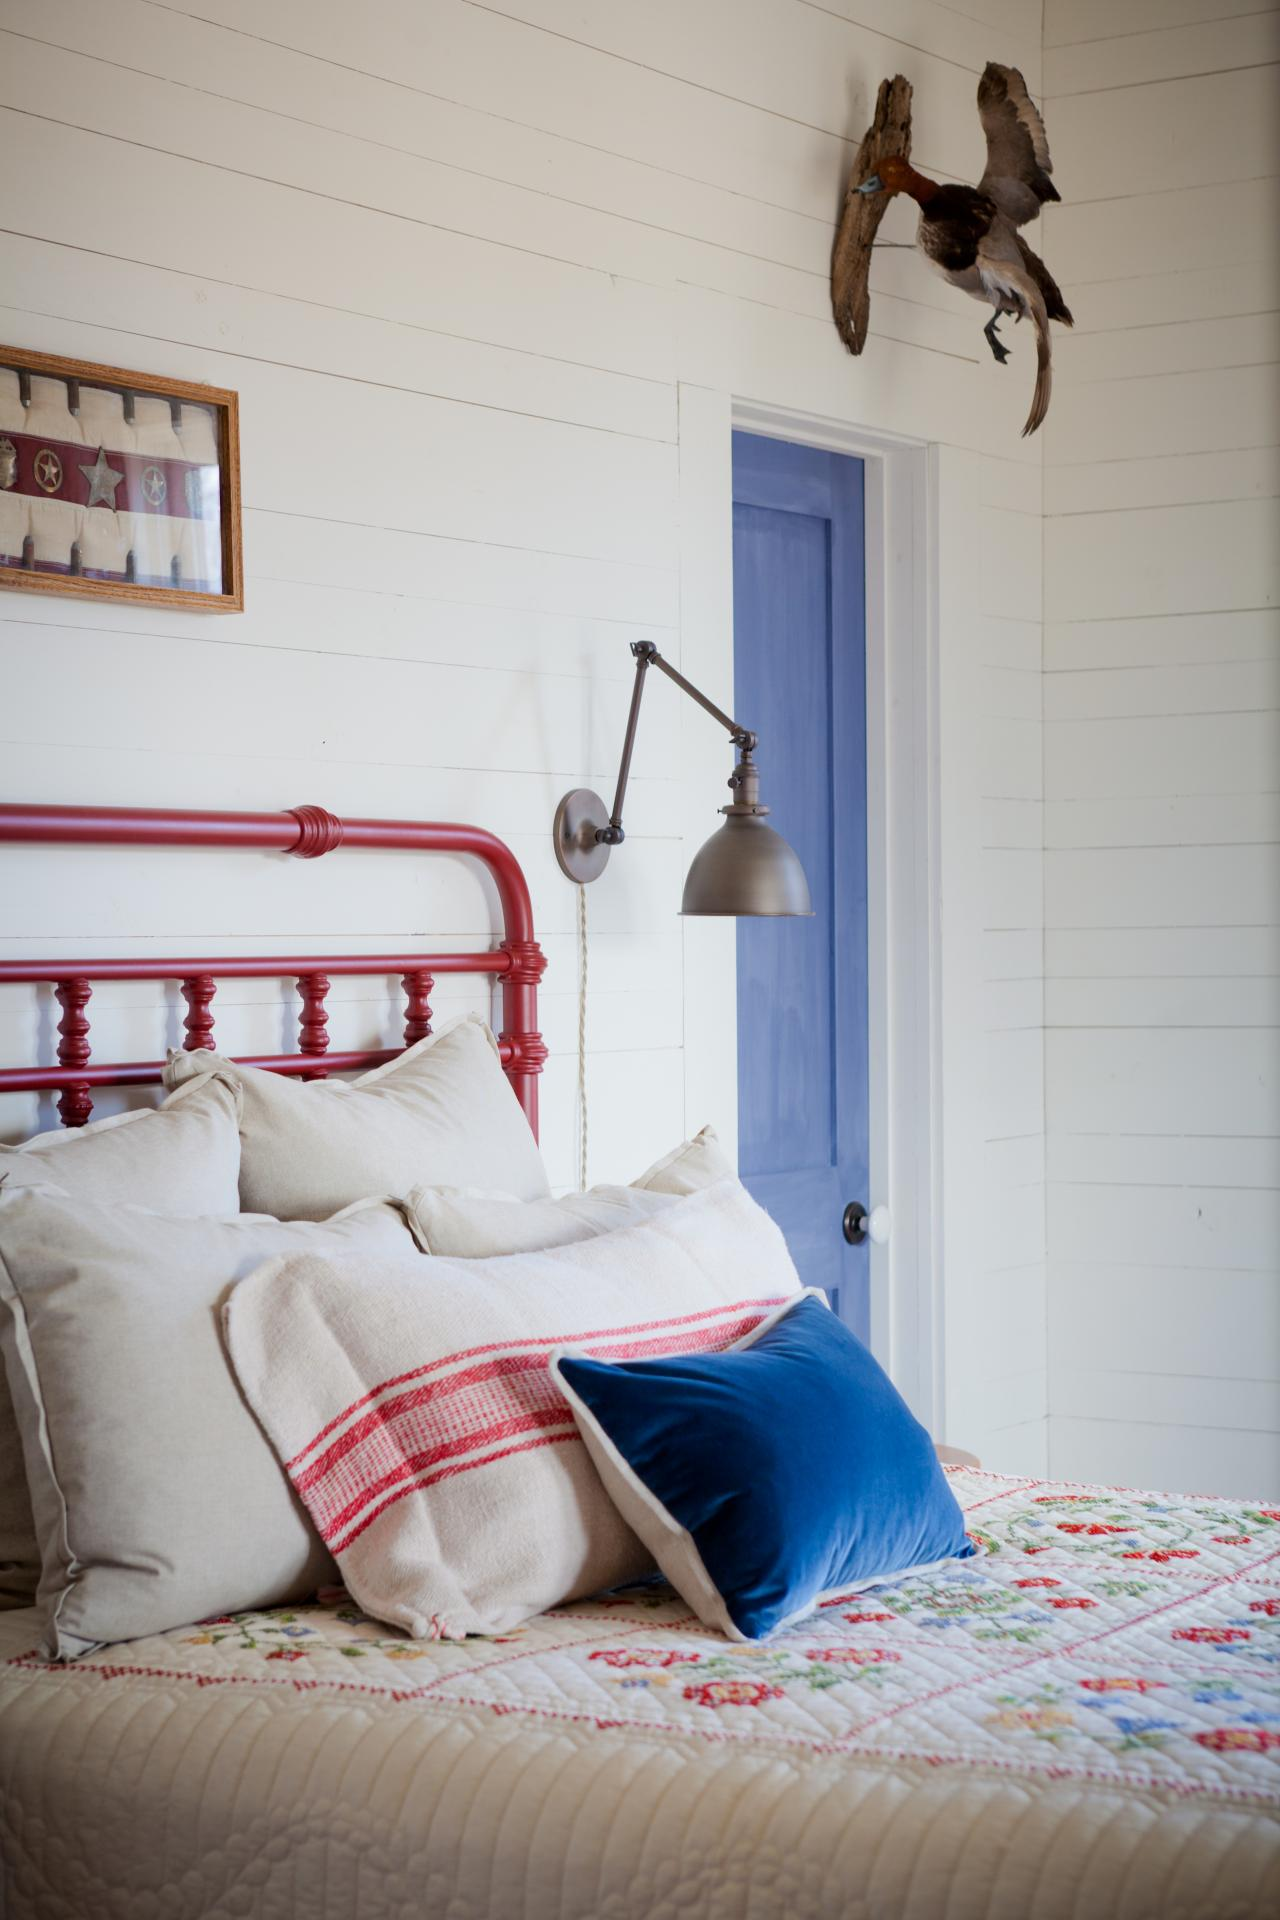 Fashion Inspired Guest Room: White Country-Style Bedroom With Red Iron Headboard